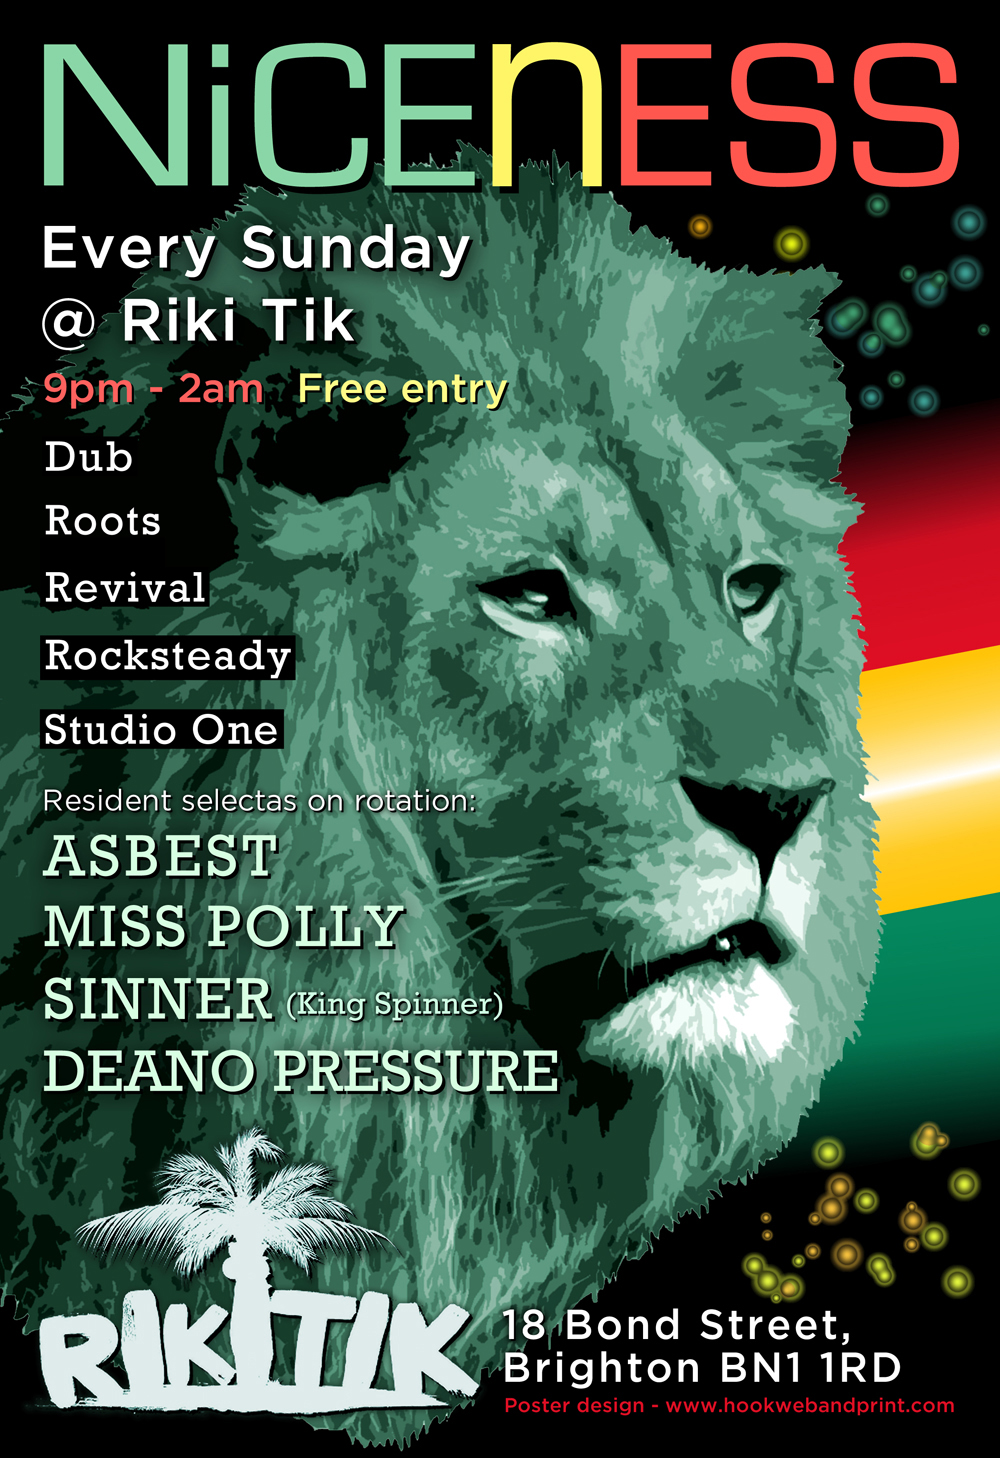 Niceness Reggae Crew poster designed by Hook Web & Print